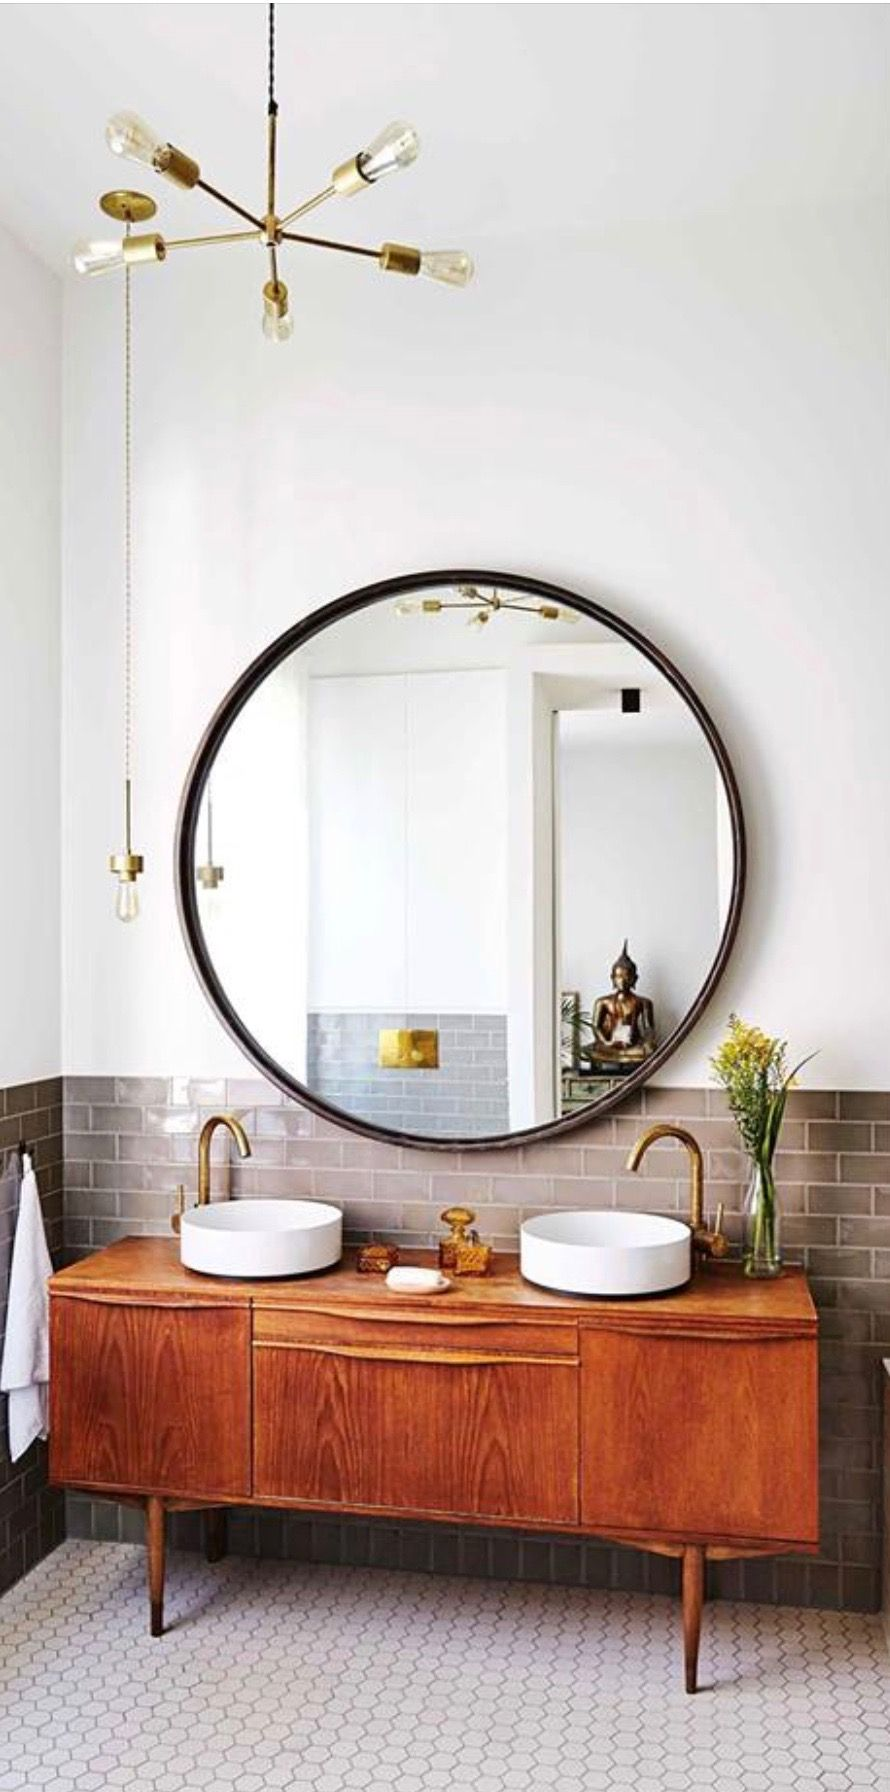 Mid Century Furniture Vanity Not A Fan Of Bowl Sinks Though Retro Home Decor Retro Home Home Interior Design